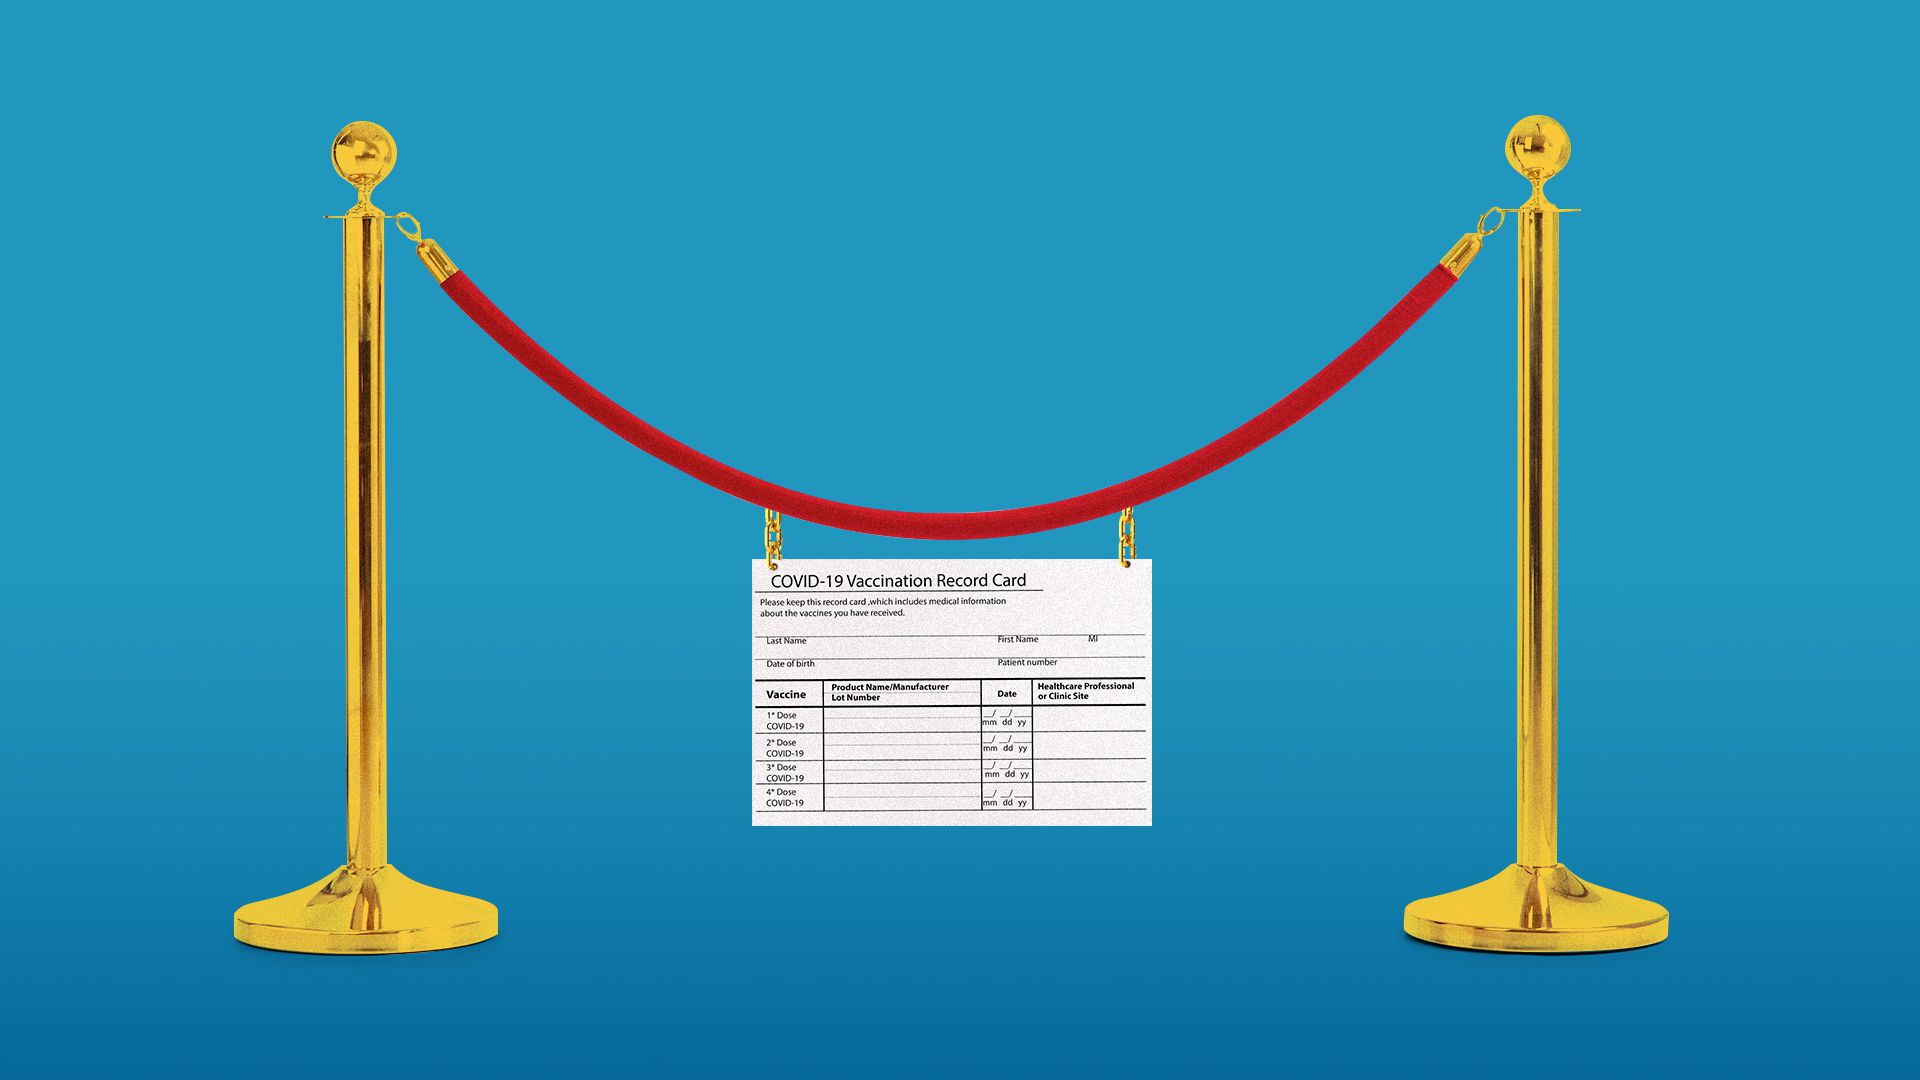 Illustration of a rope barrier with a vaccination card hanging from the rope section.